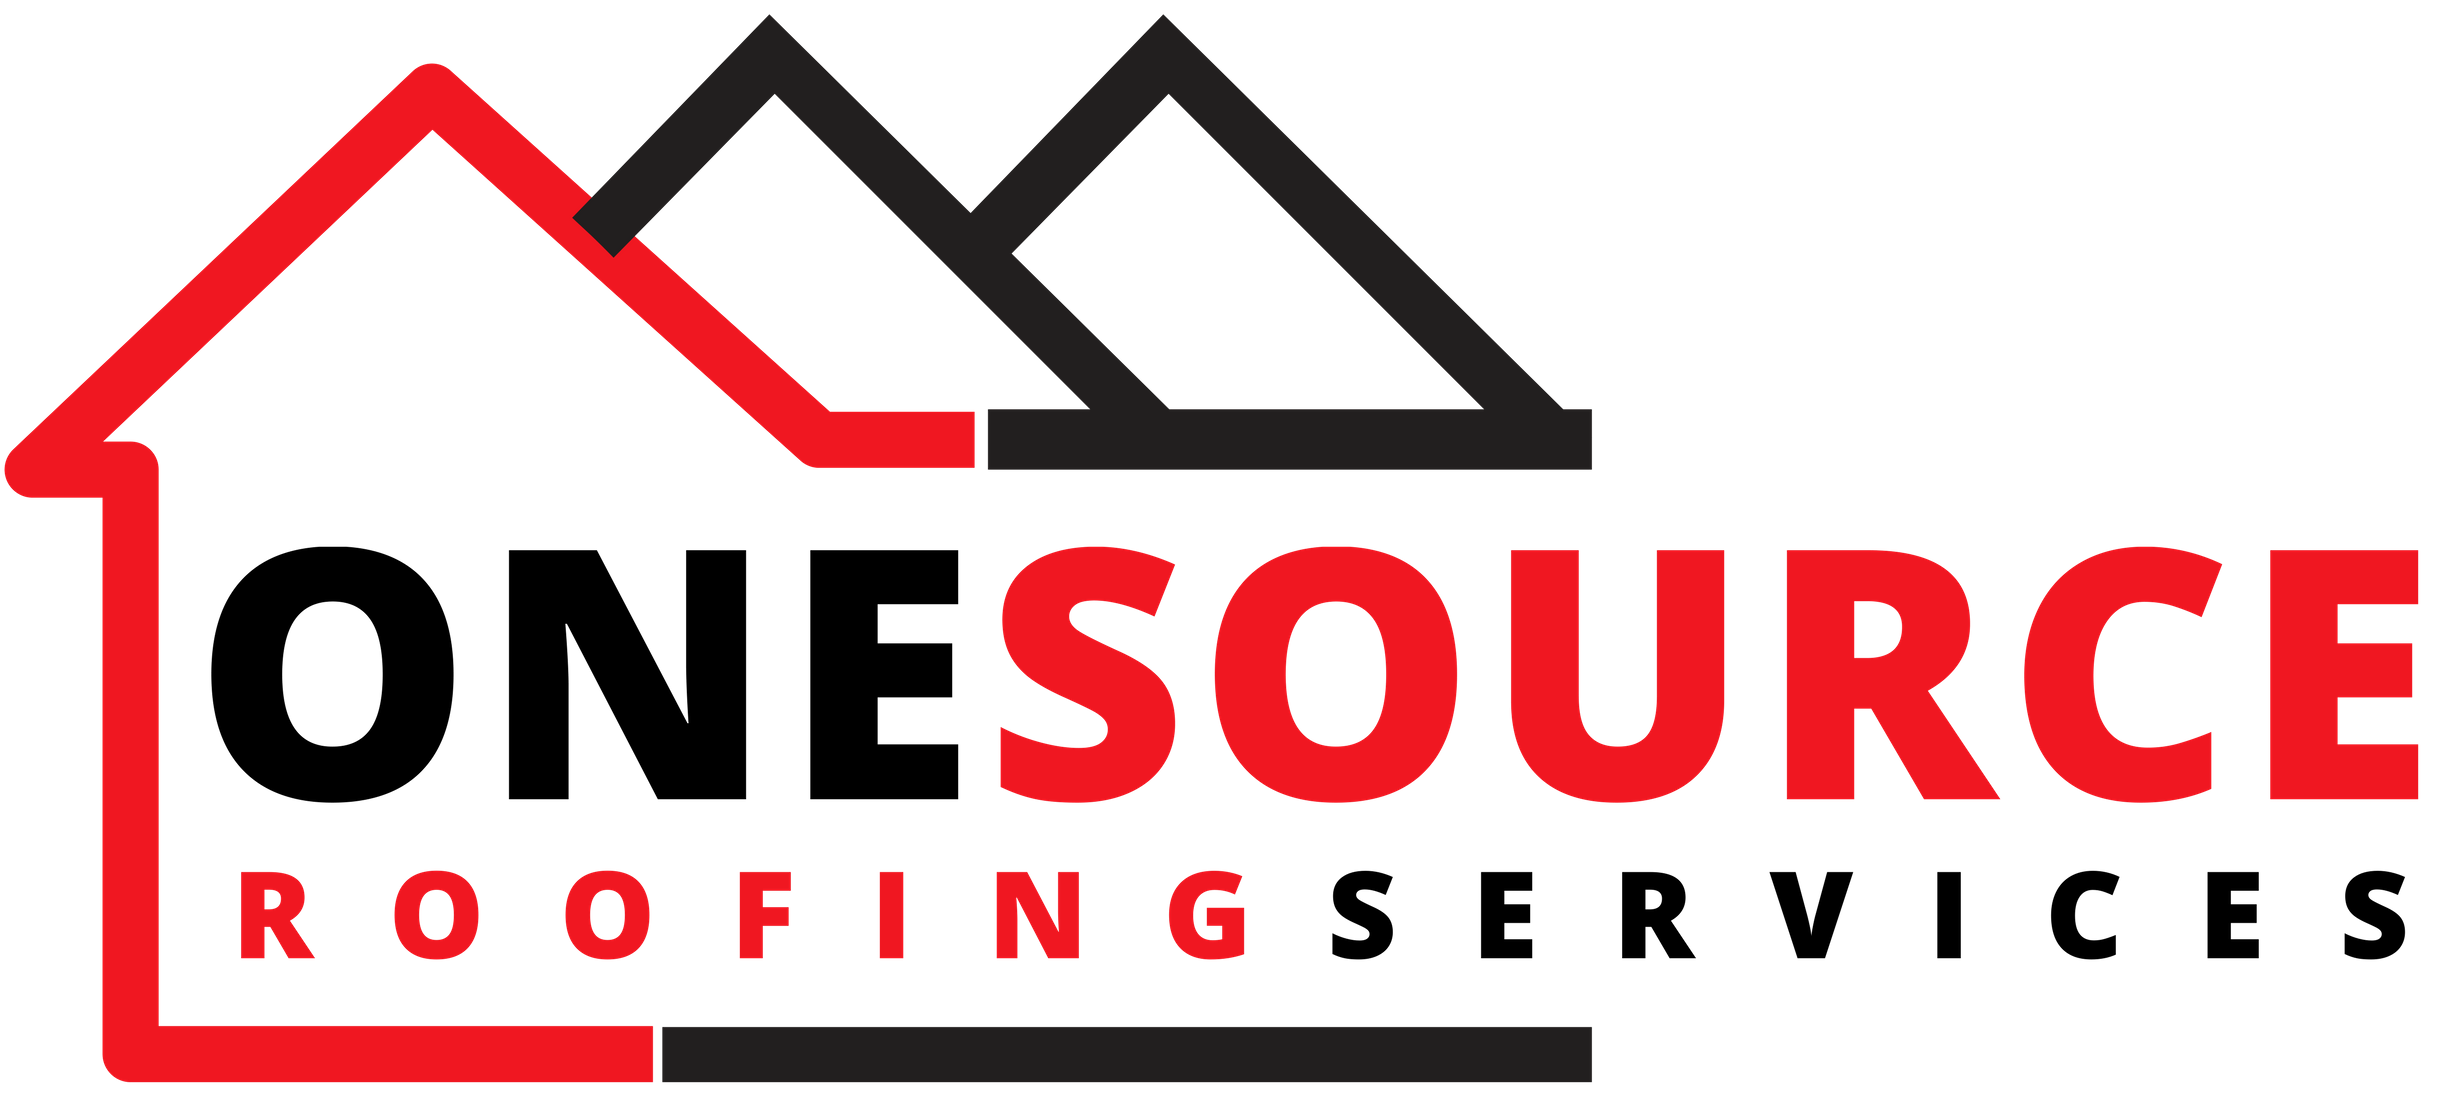 One Source Roofing